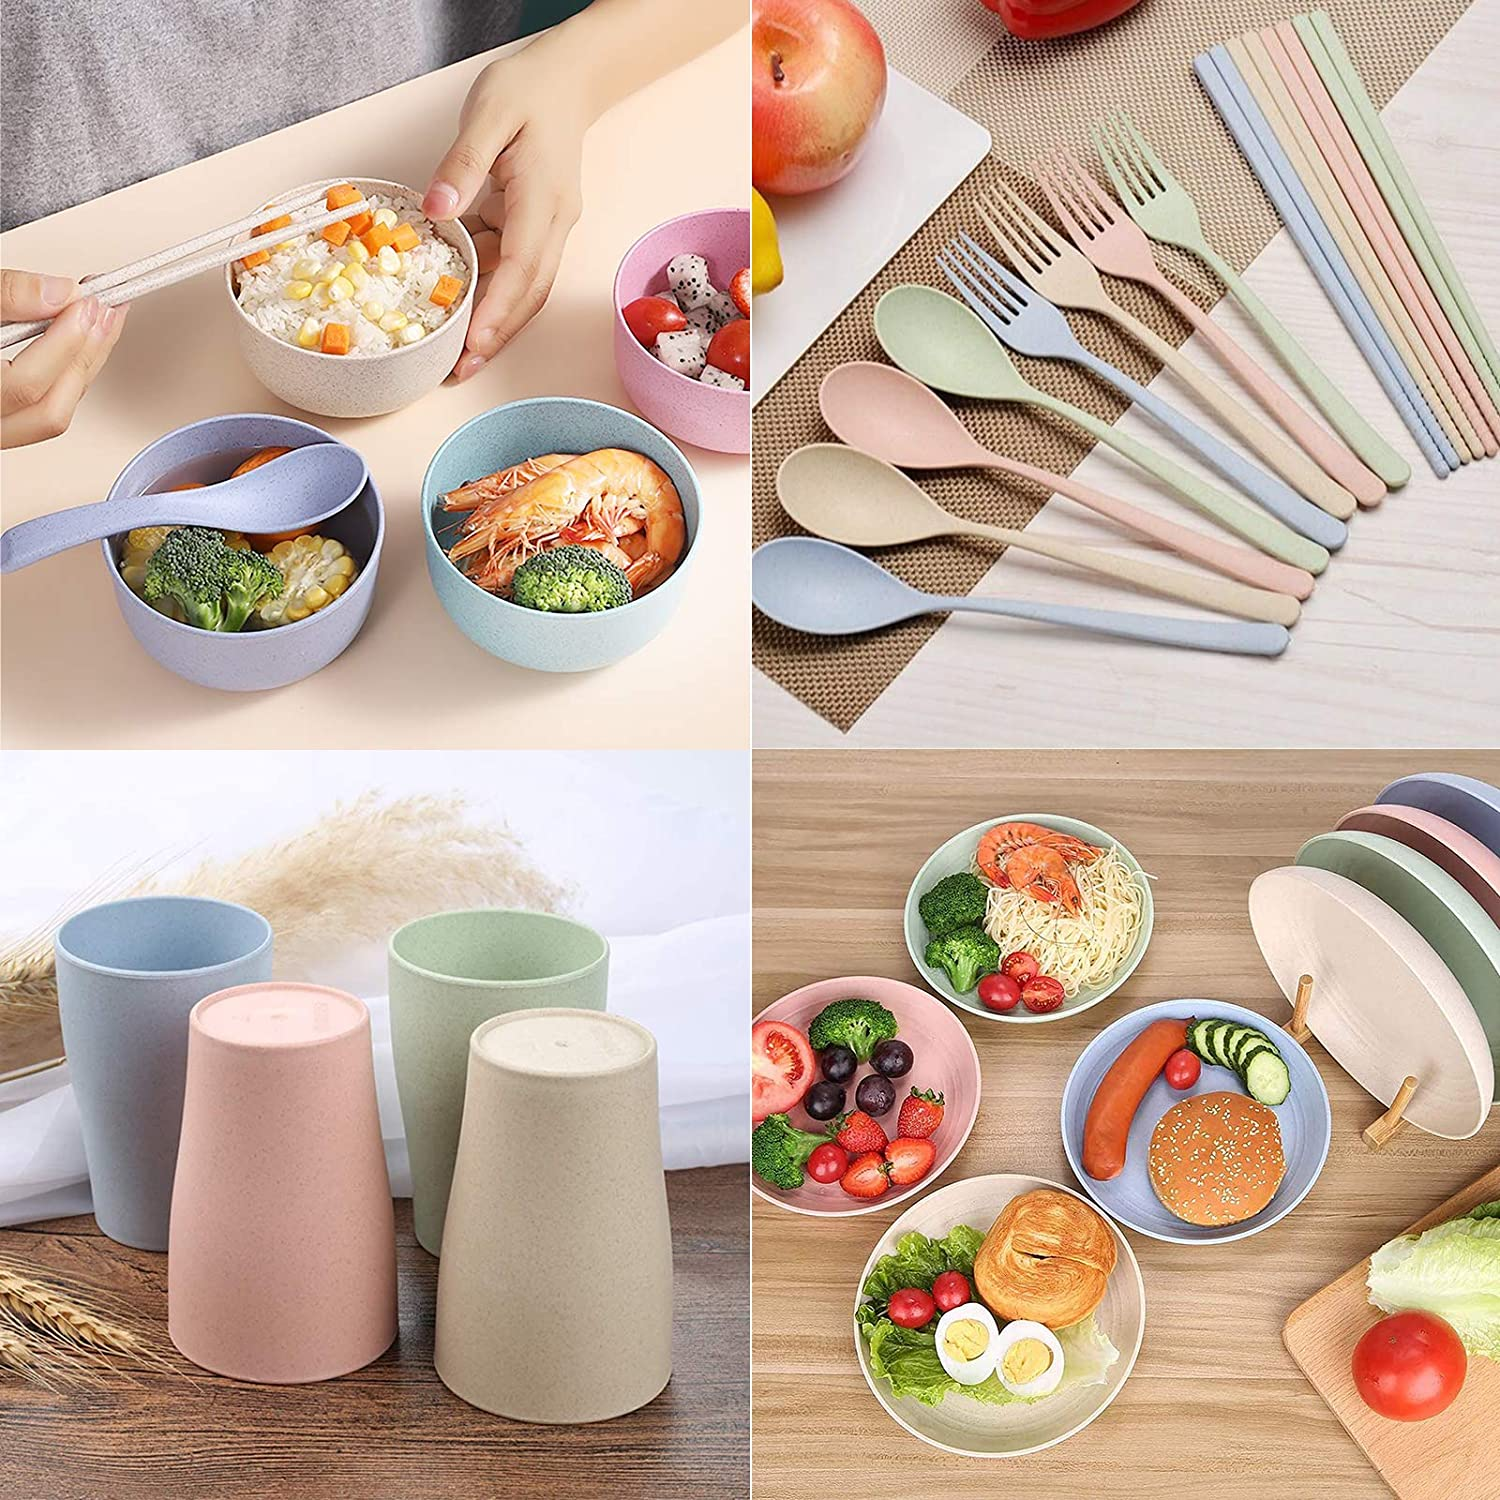 Spoons Set Microwave /& Dishwasher Safe Dish Bowl for Kids or Picnics DeeCoo Wheat Straw Dinnerware Sets of 4 24pcs Cups Forks Chopsticks Unbreakable and Lightweight Serving Bowls Plates